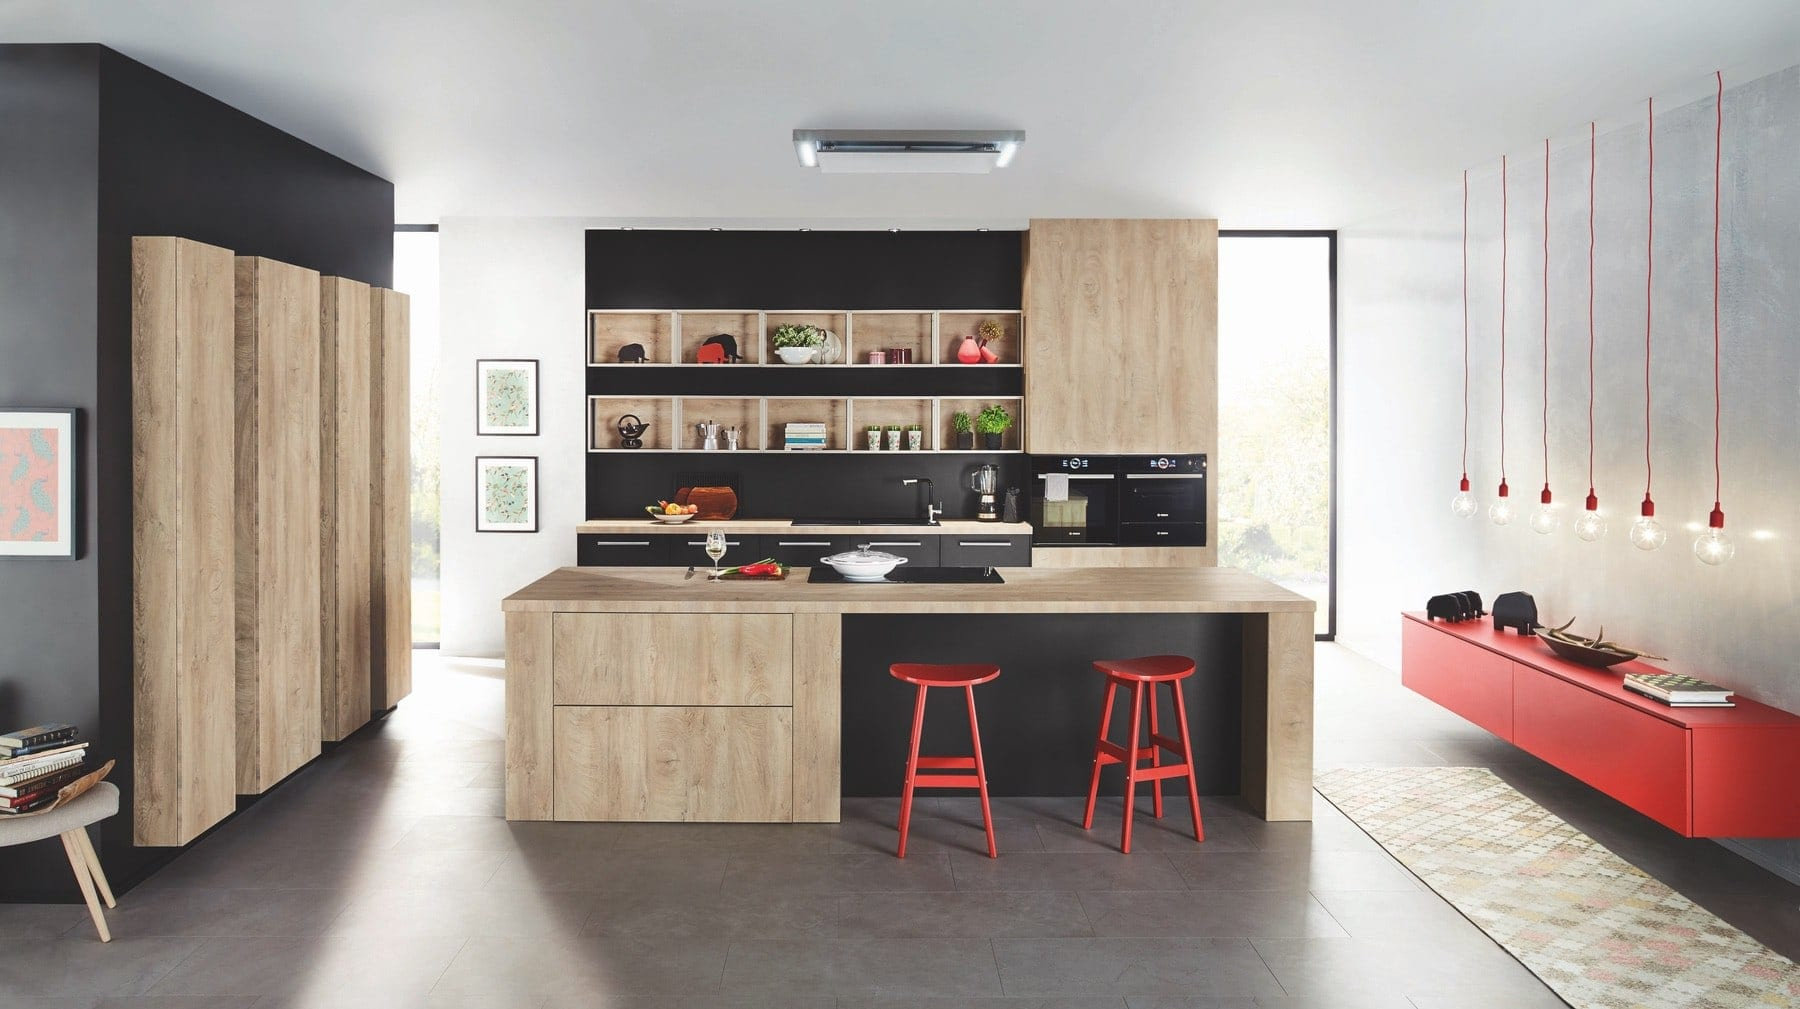 Ballerina Wood Kitchen With Island | Colour House Interiors, Caterham